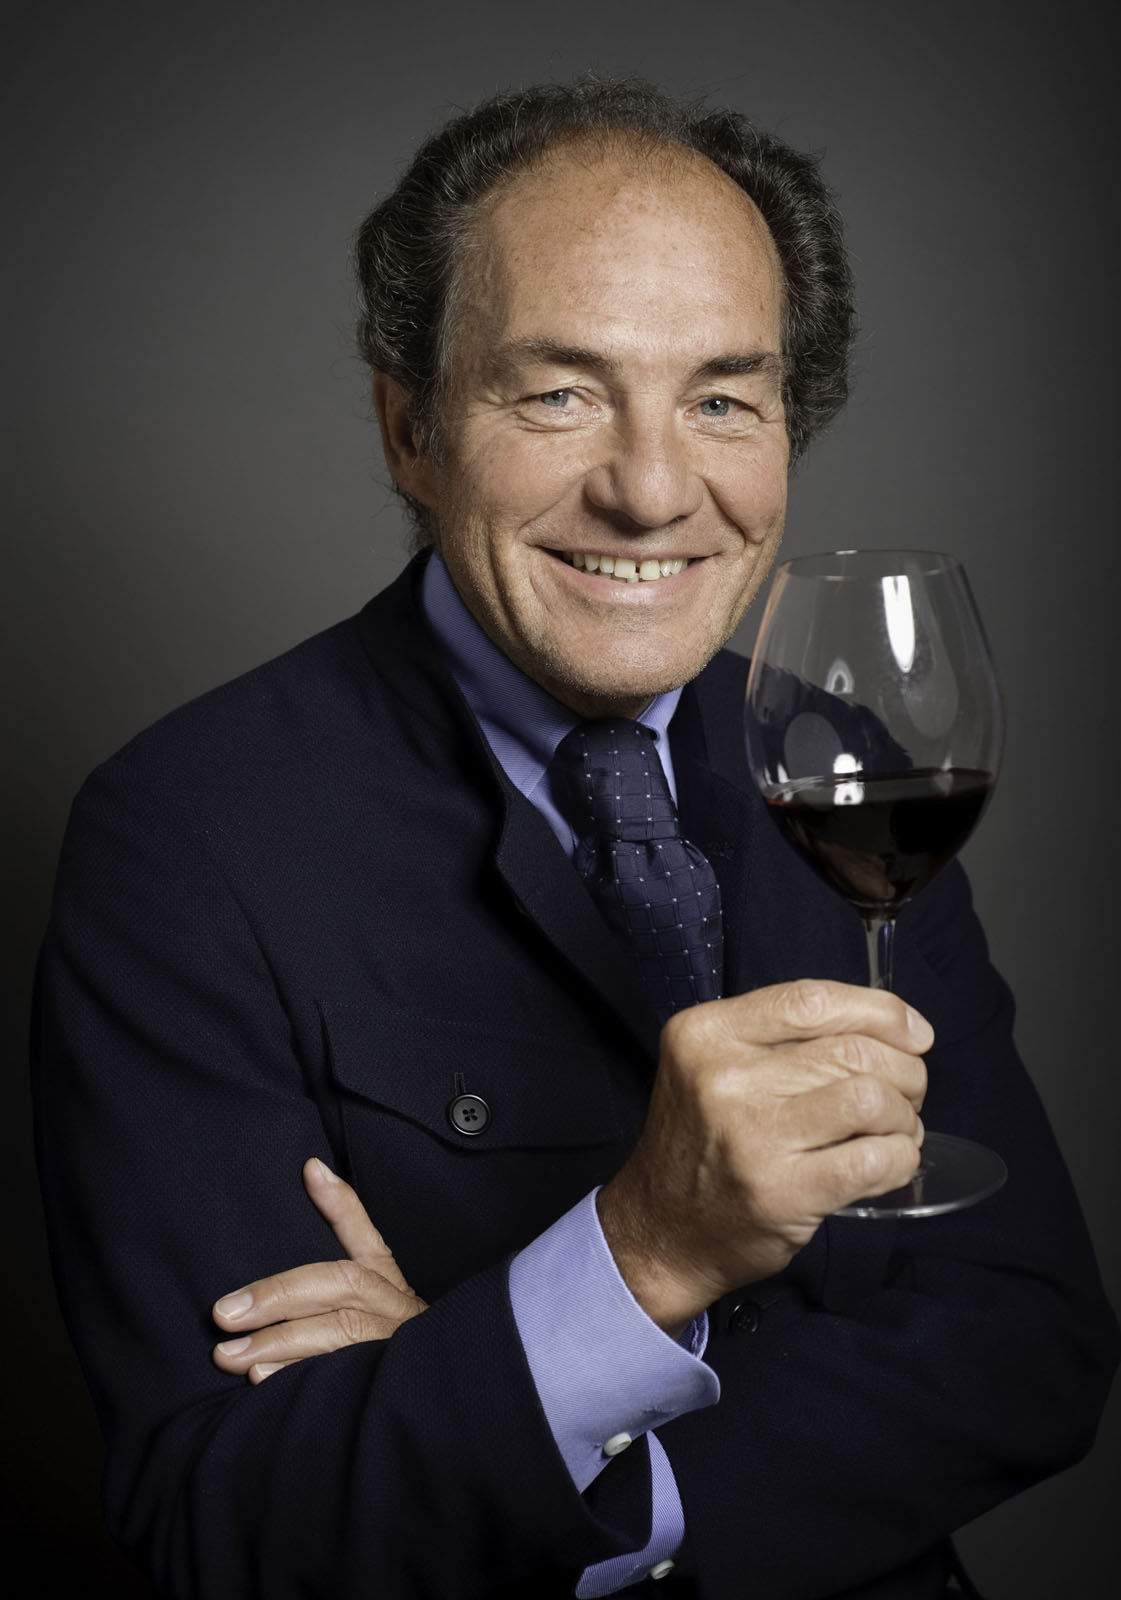 """Georg Riedel and a Riedel glass. I asked him if he travels with one of his wine glasses and he said that he does bring along a small one, """"an SOS version"""" of the Riedel stuff."""